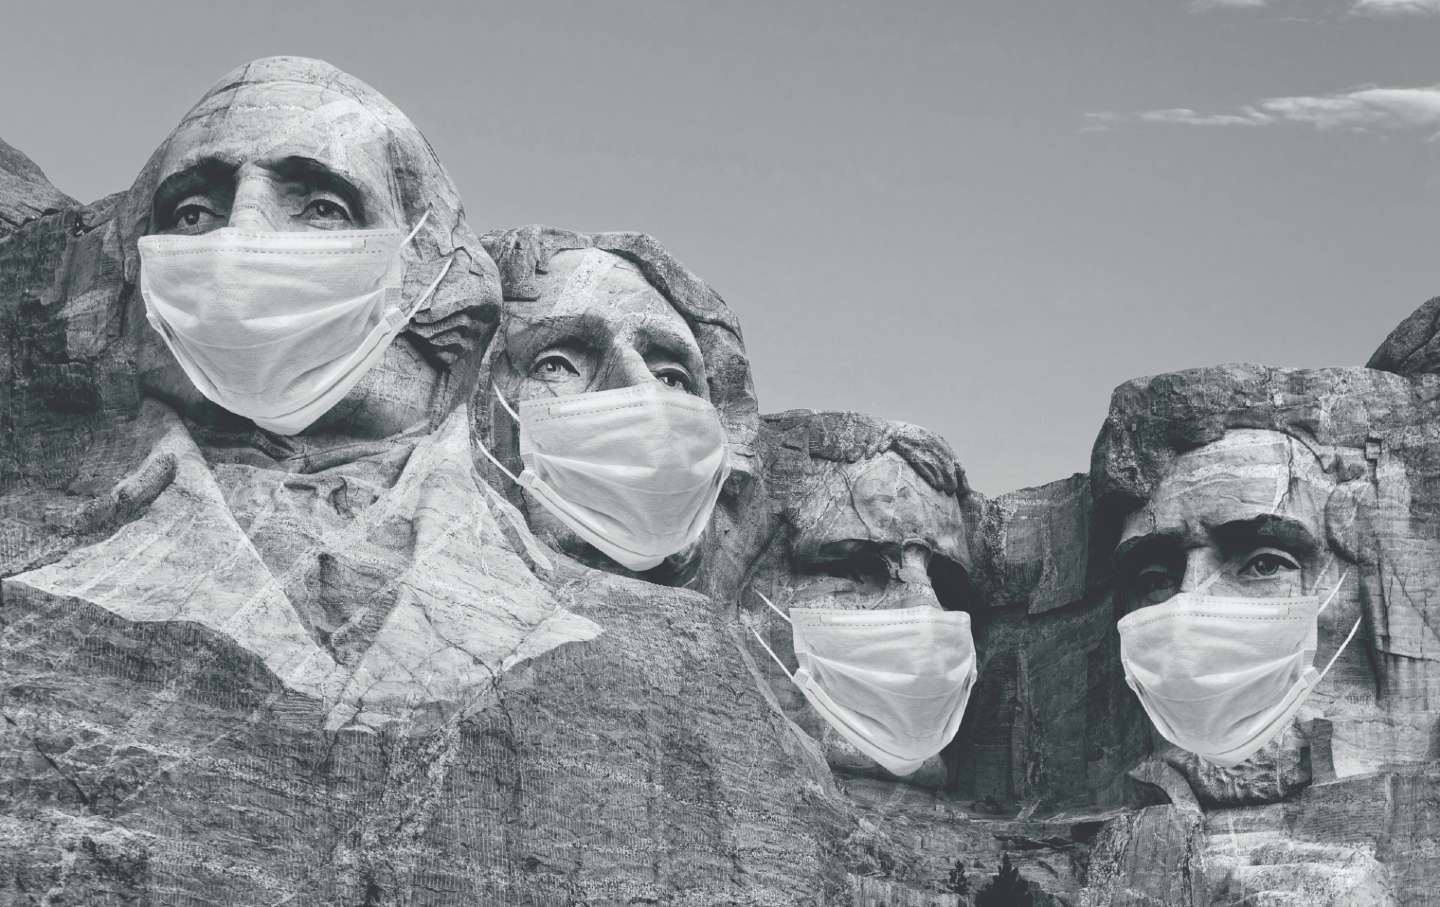 The faces on Mt. Rushmore wearing surgical masks